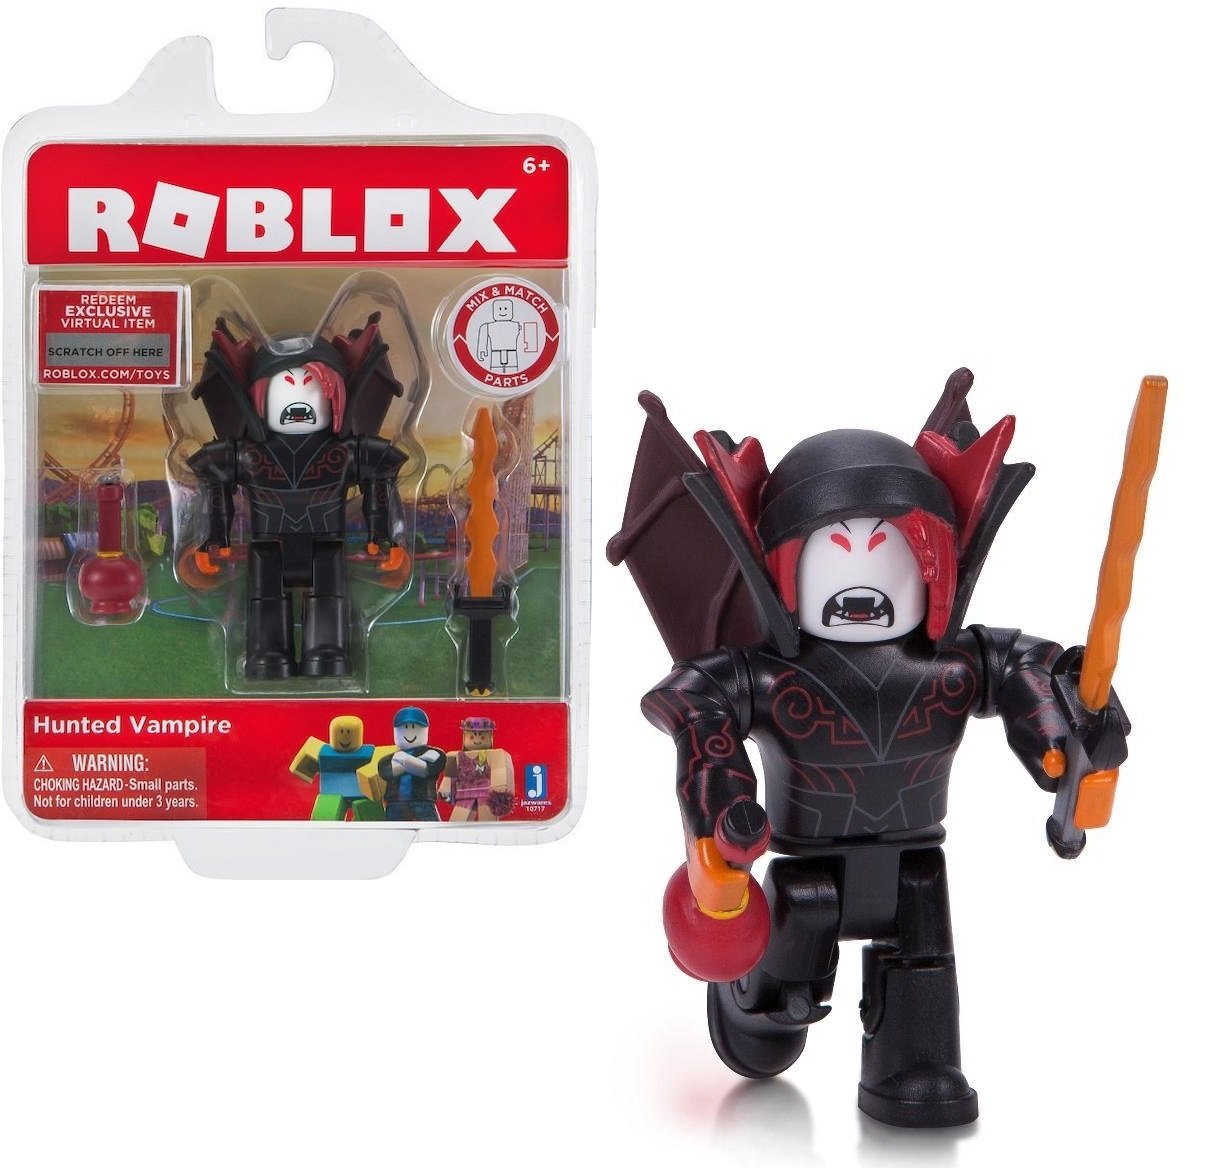 amazoncom roblox hunted vampire action figure comes Roblox Hunted Vampire Action Figure Comes With A Unique Code That Can Be Redeemed For Exclusive Virtual Item Amazon In Home Kitchen